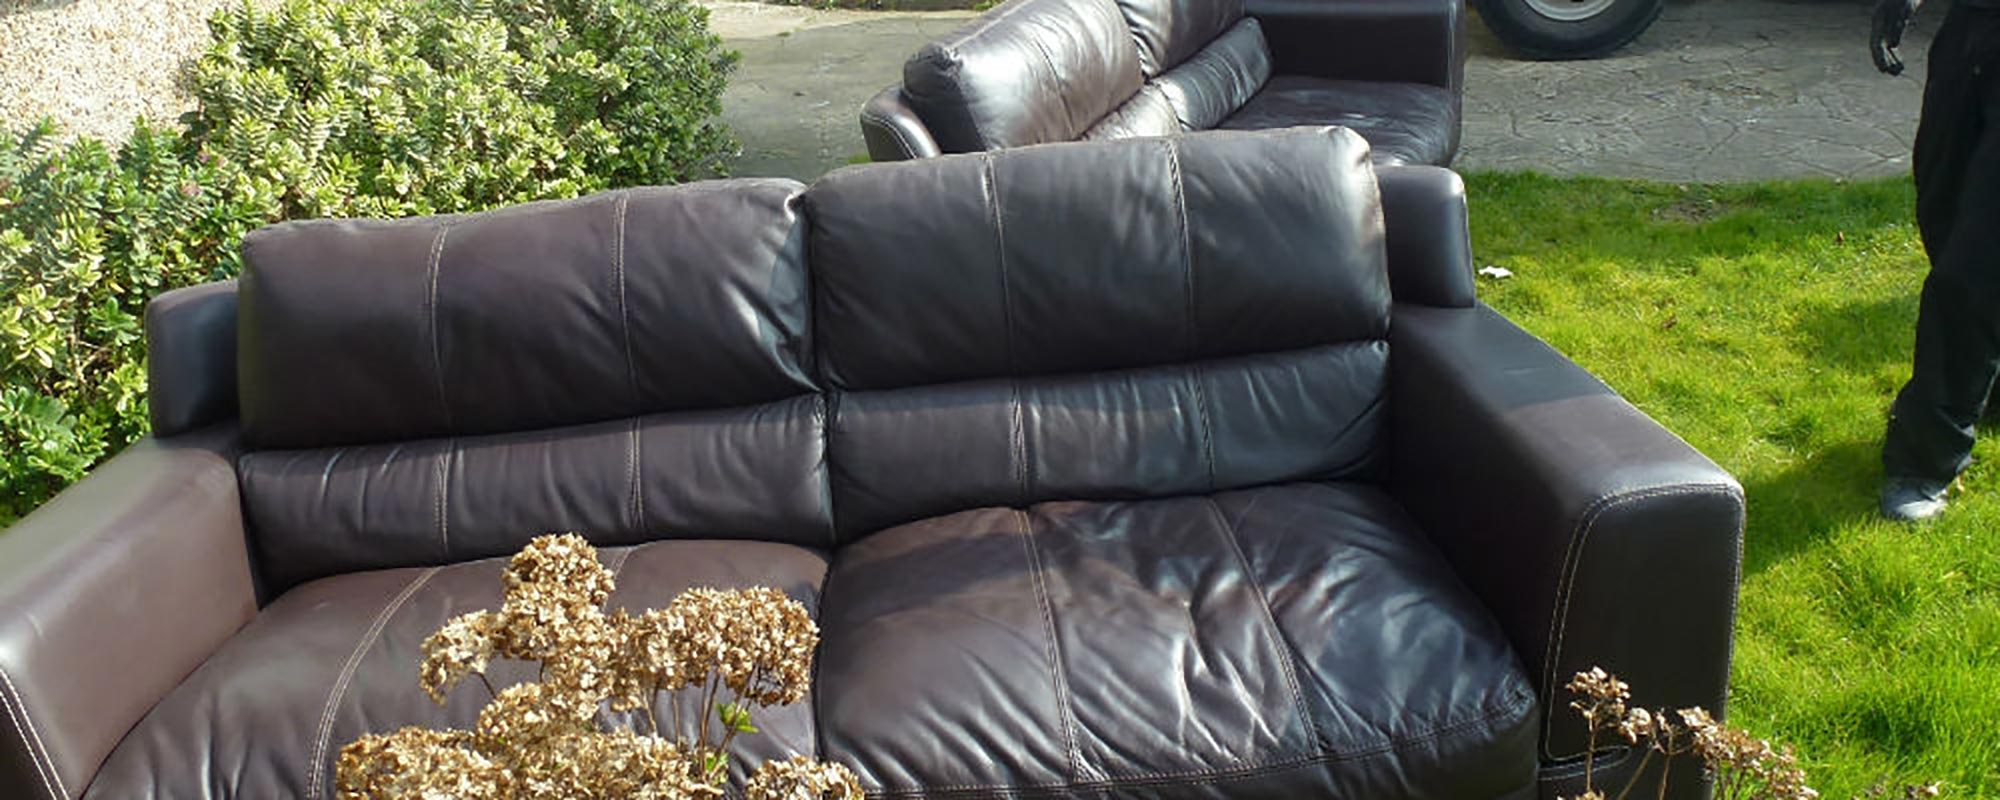 Sofa Disposal London